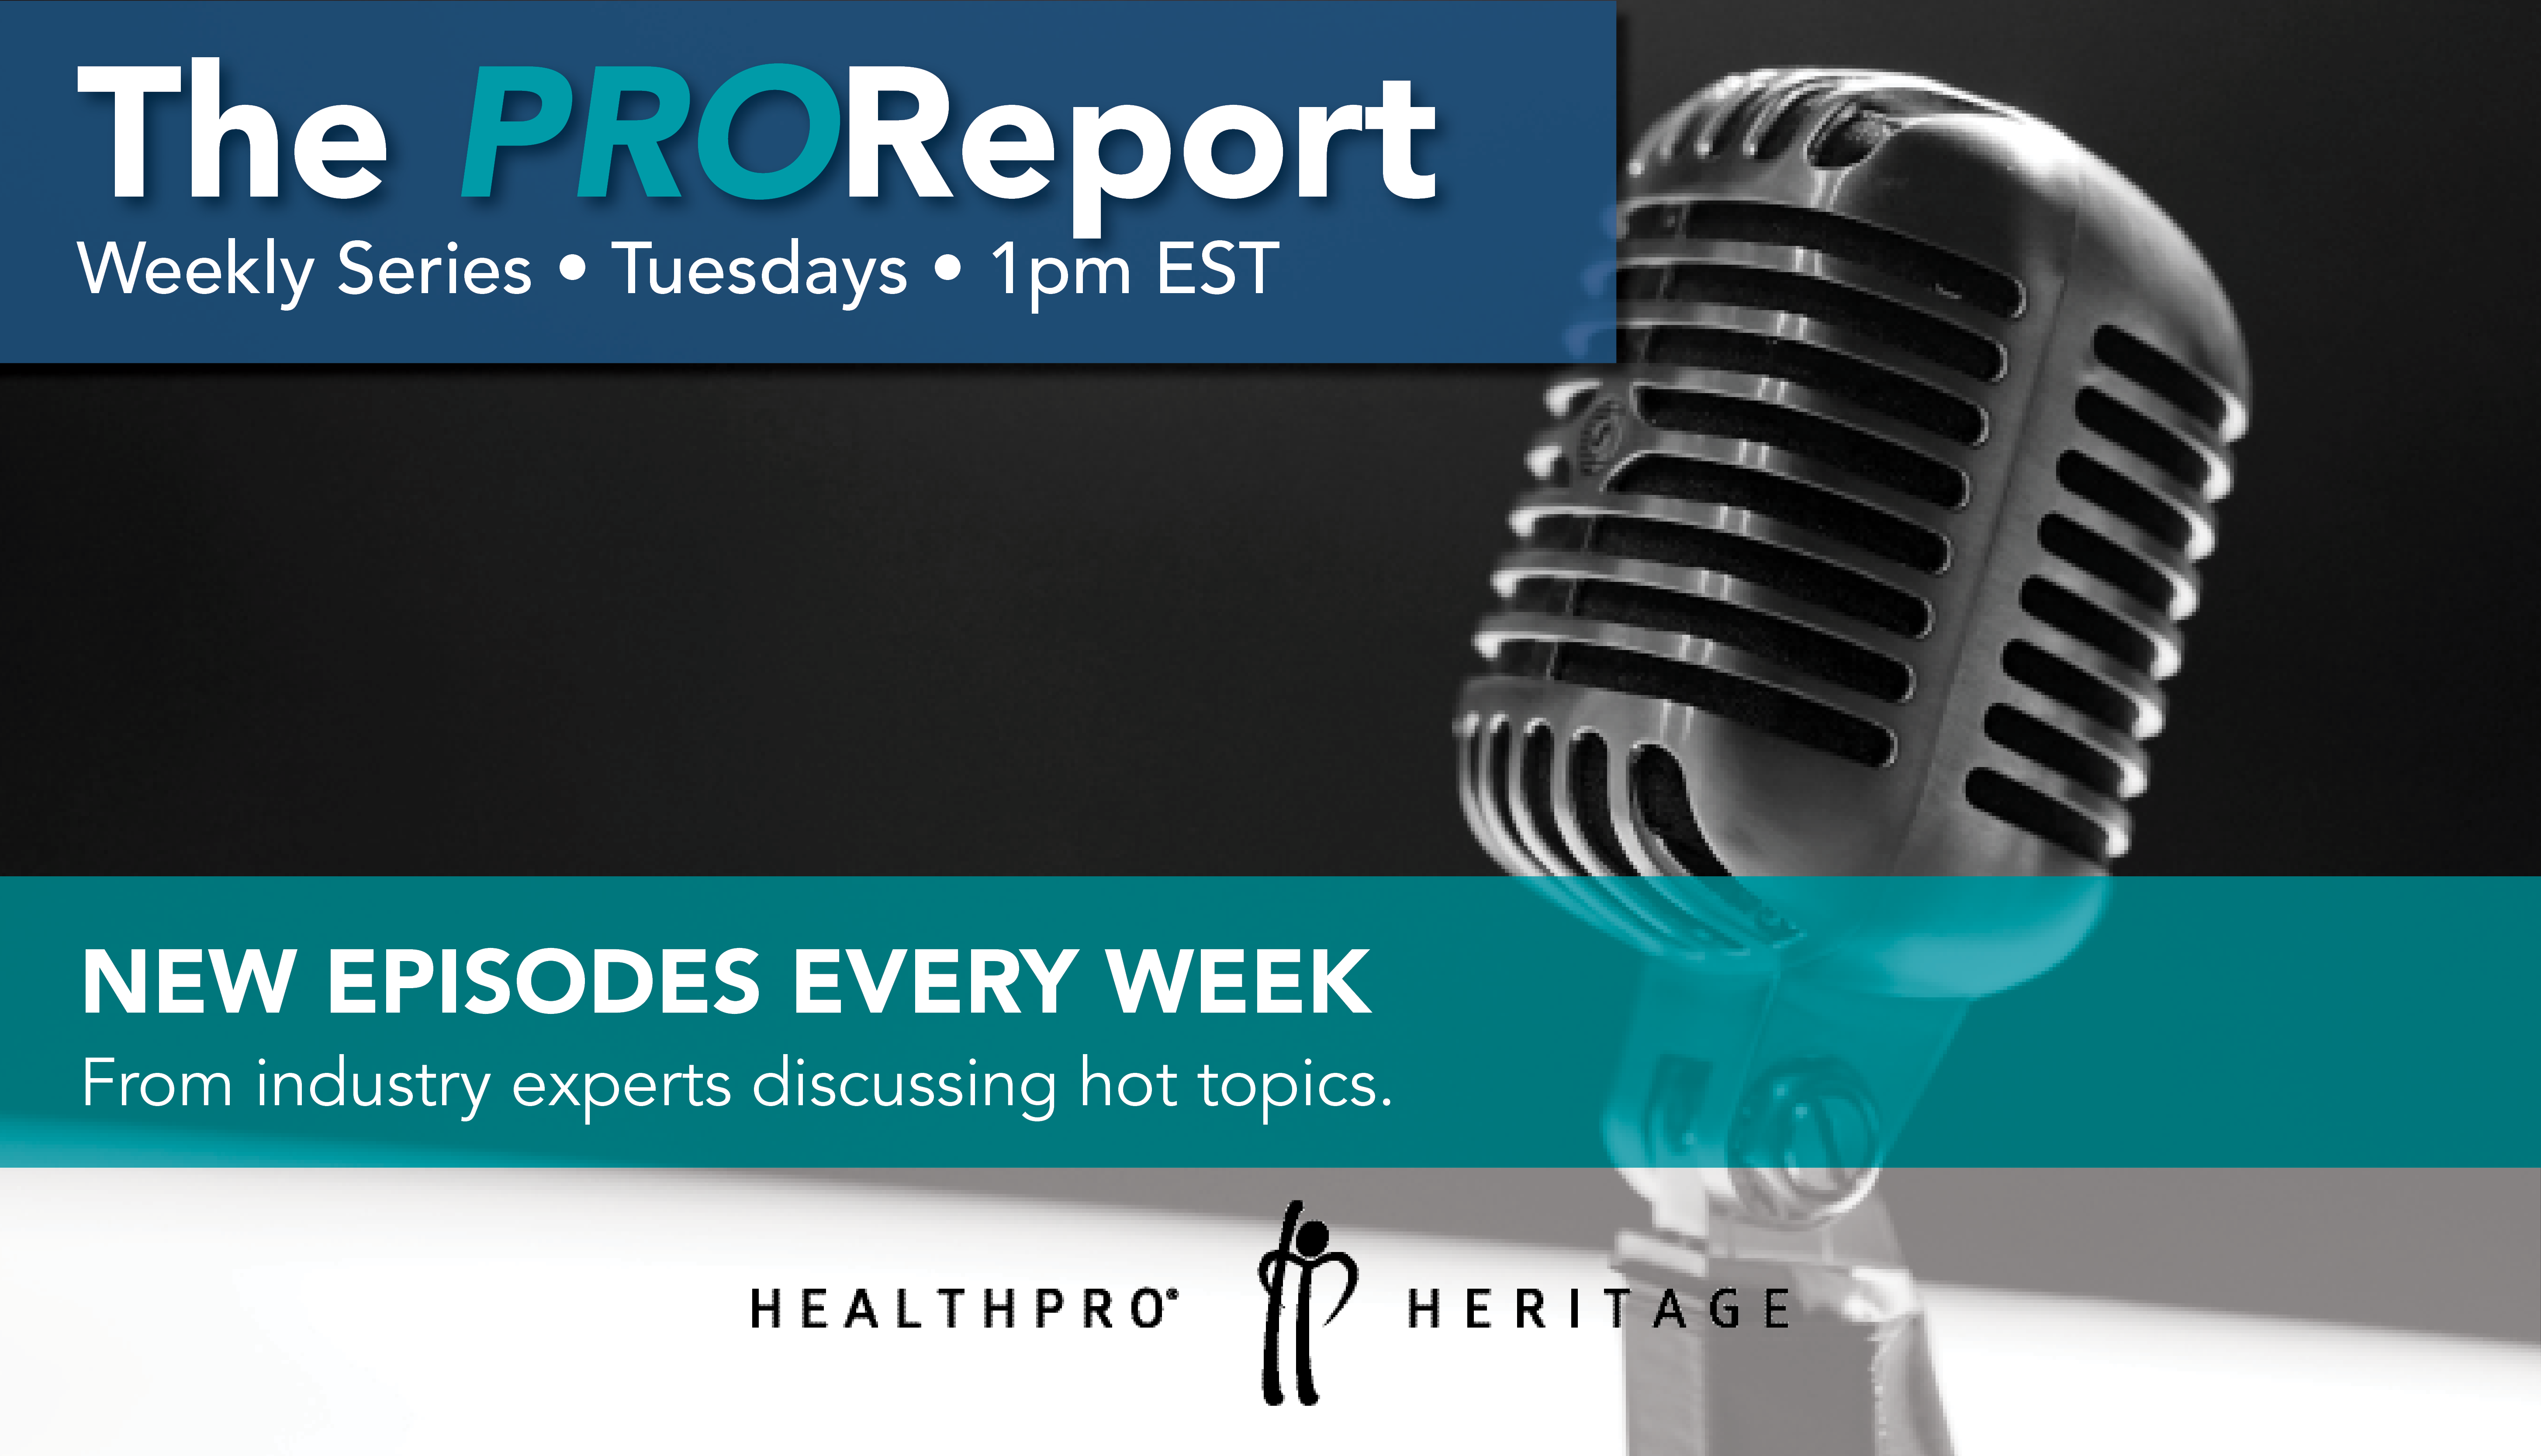 The PROReport by HealthPRO® Heritage